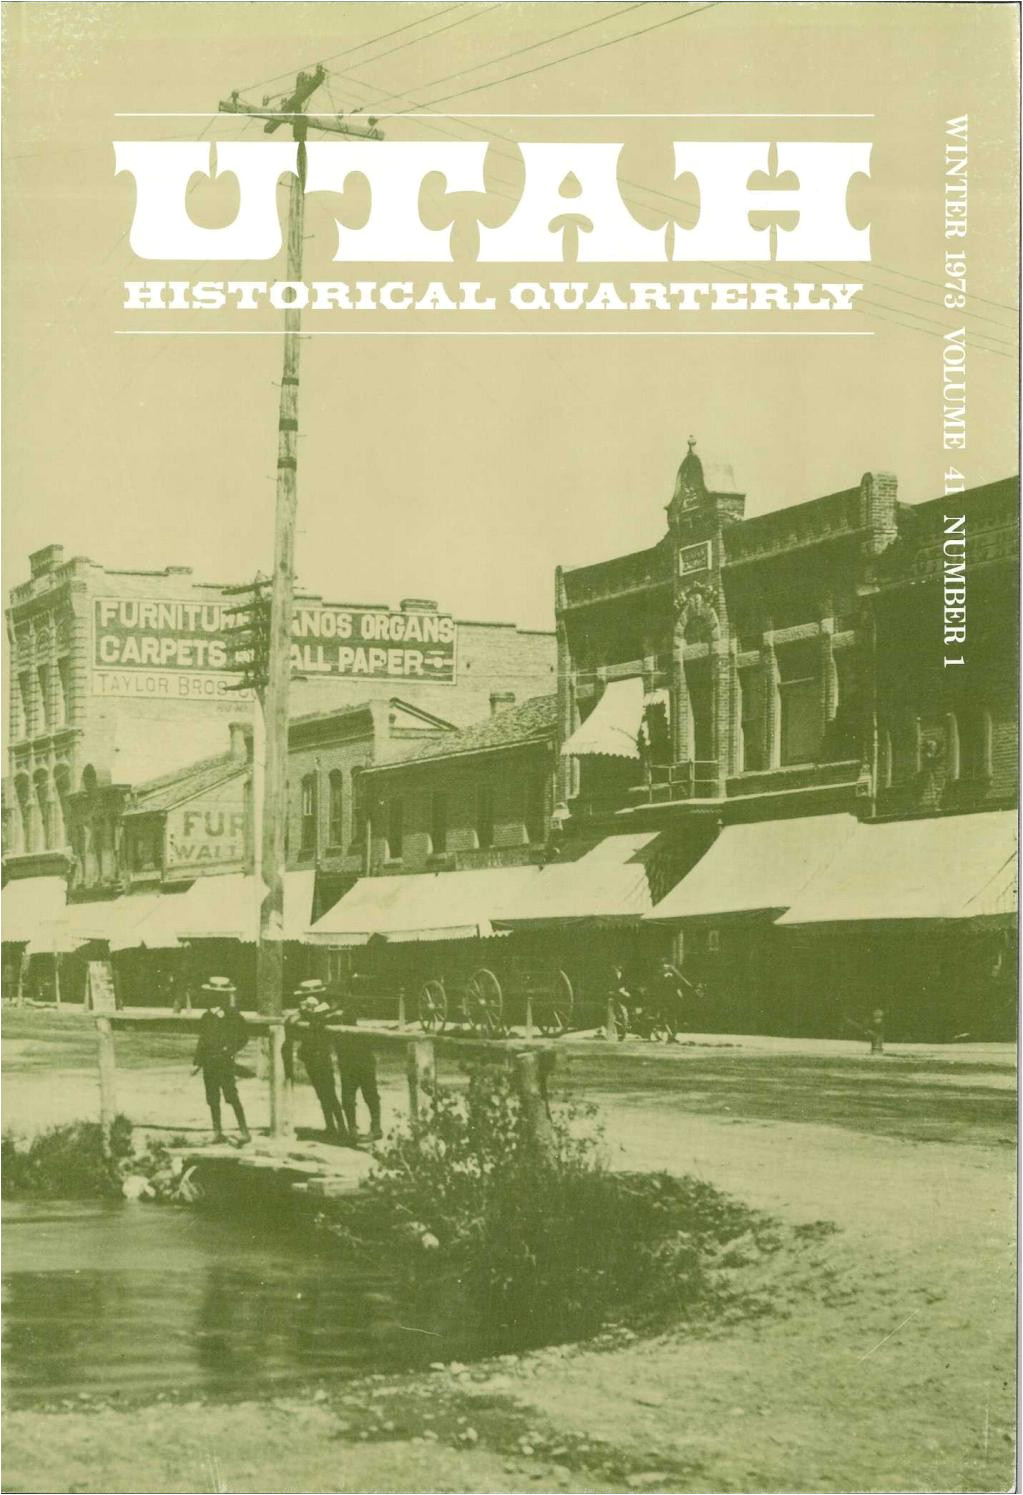 utah historical quarterly volume 41 number 1 4 1973 by utahstatehistory issuu